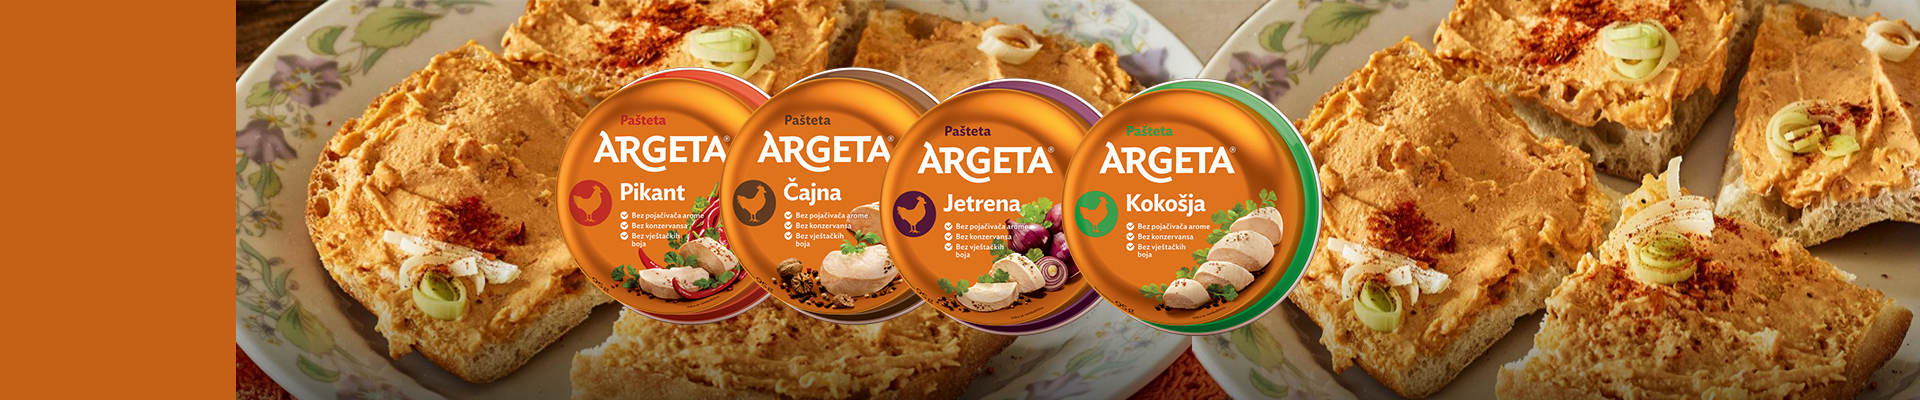 Argeta Pate now in new flavours !